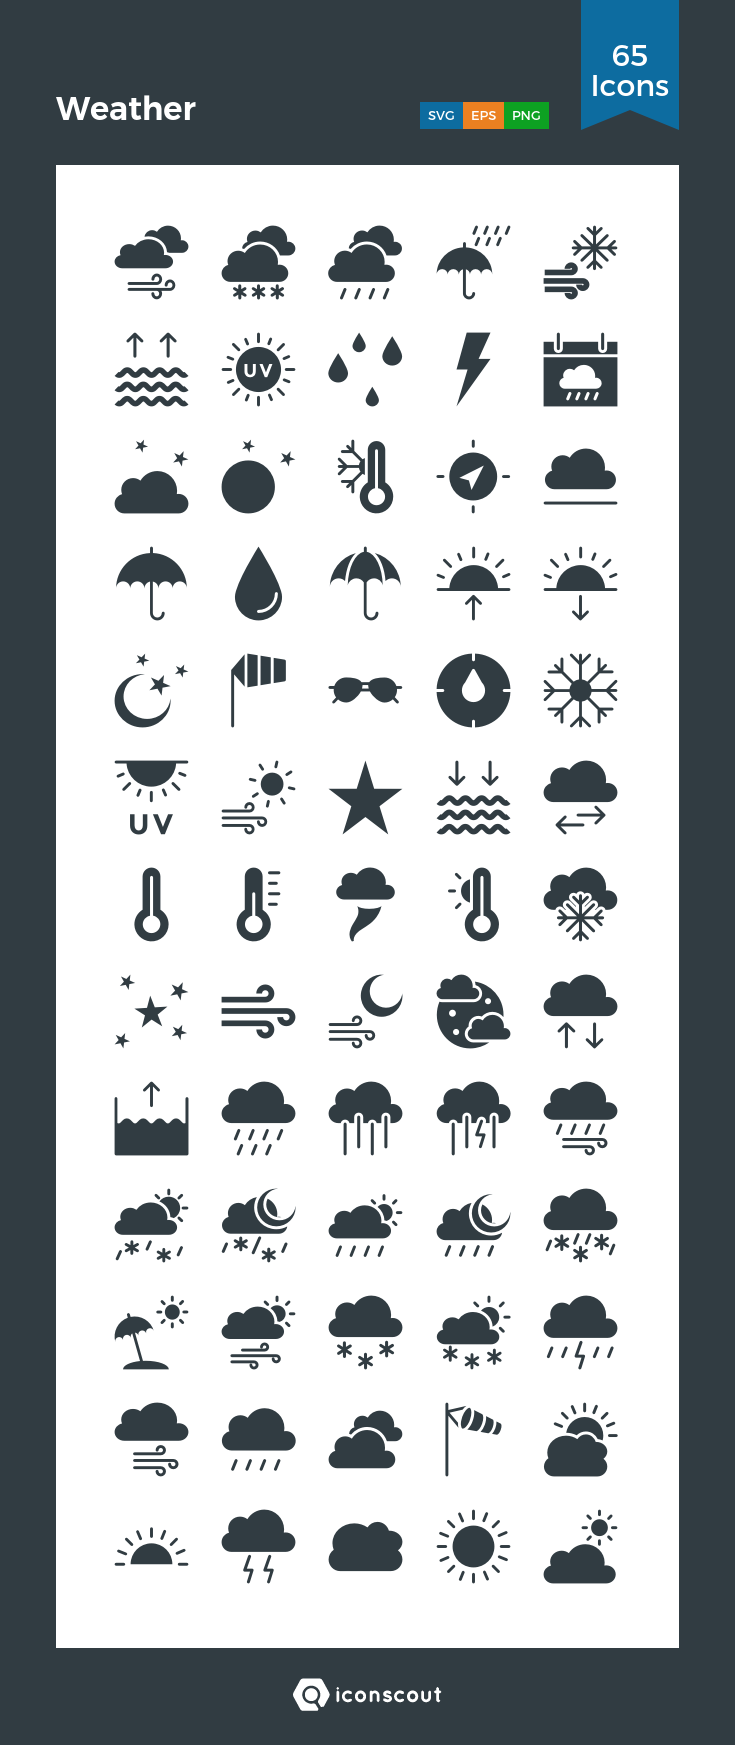 Weather icons download